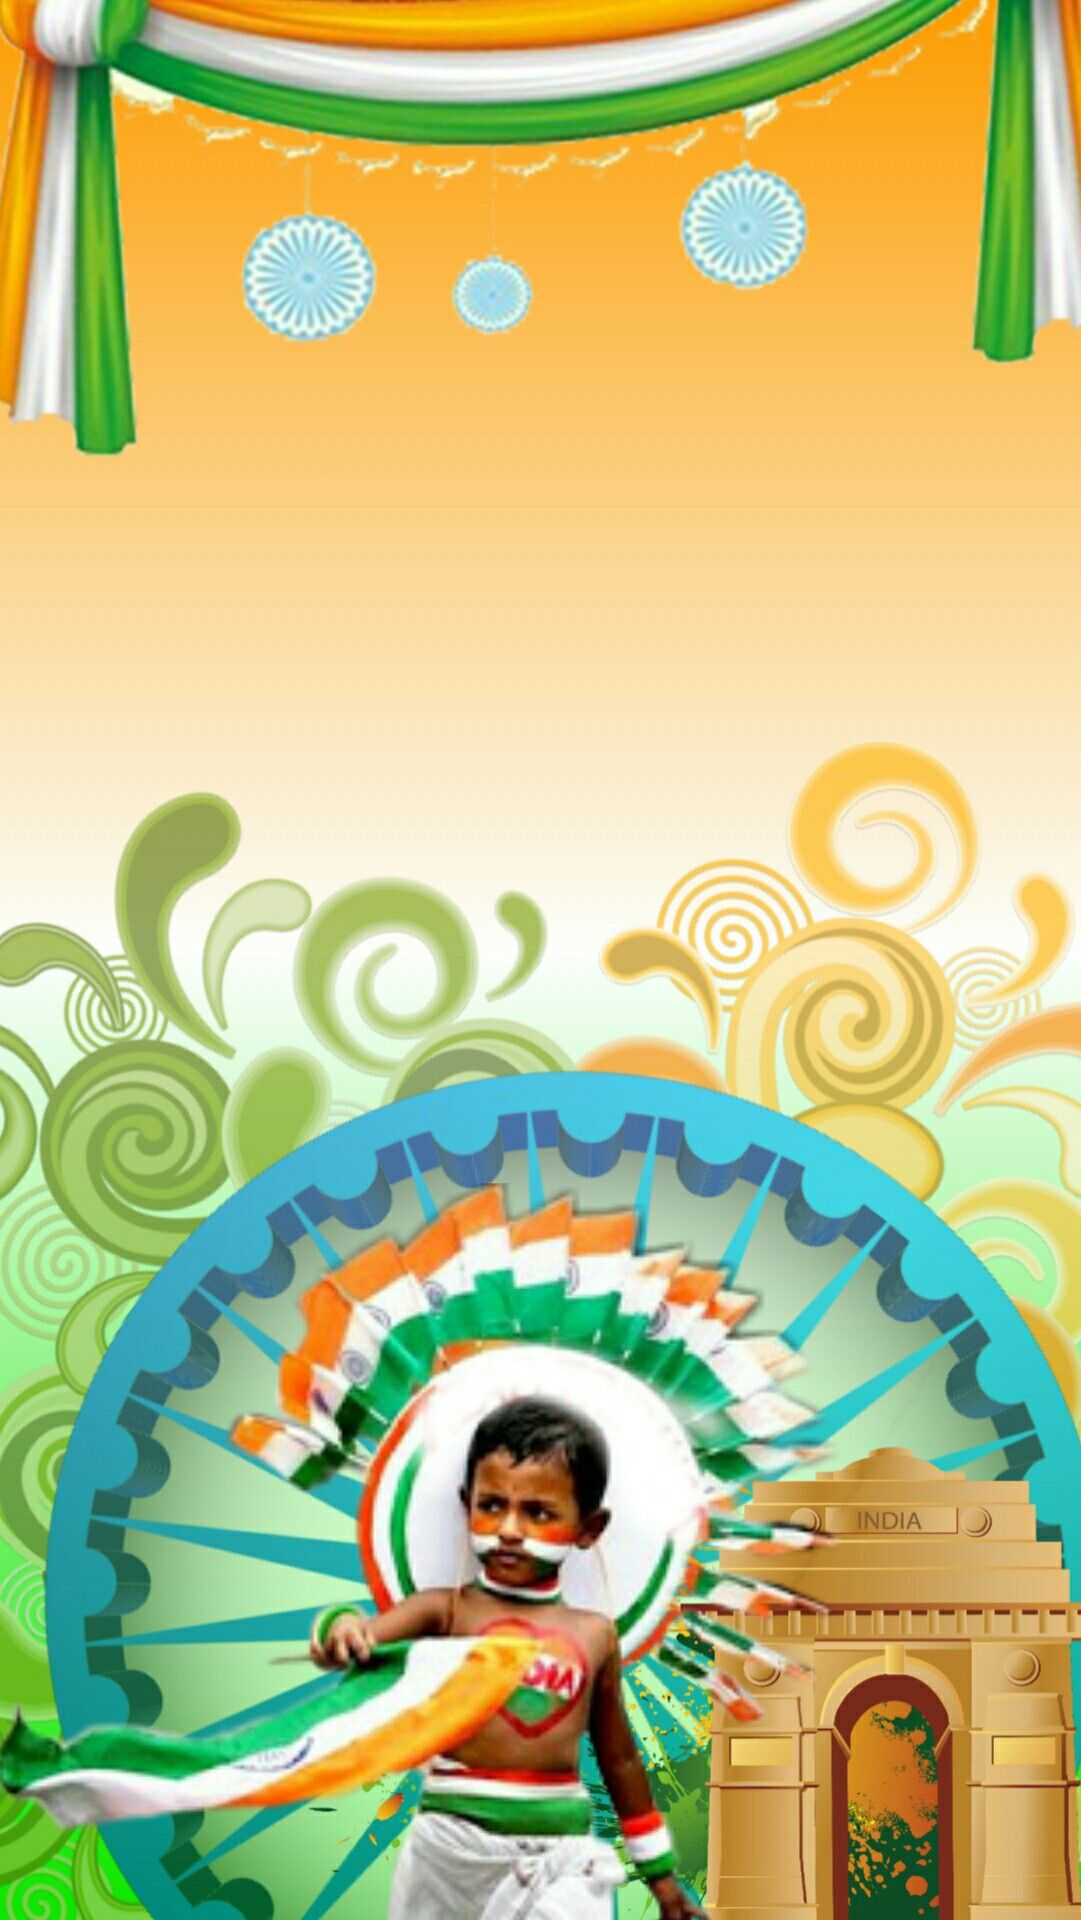 Pin by Rabi Barman on it's My India Wallpaper, India